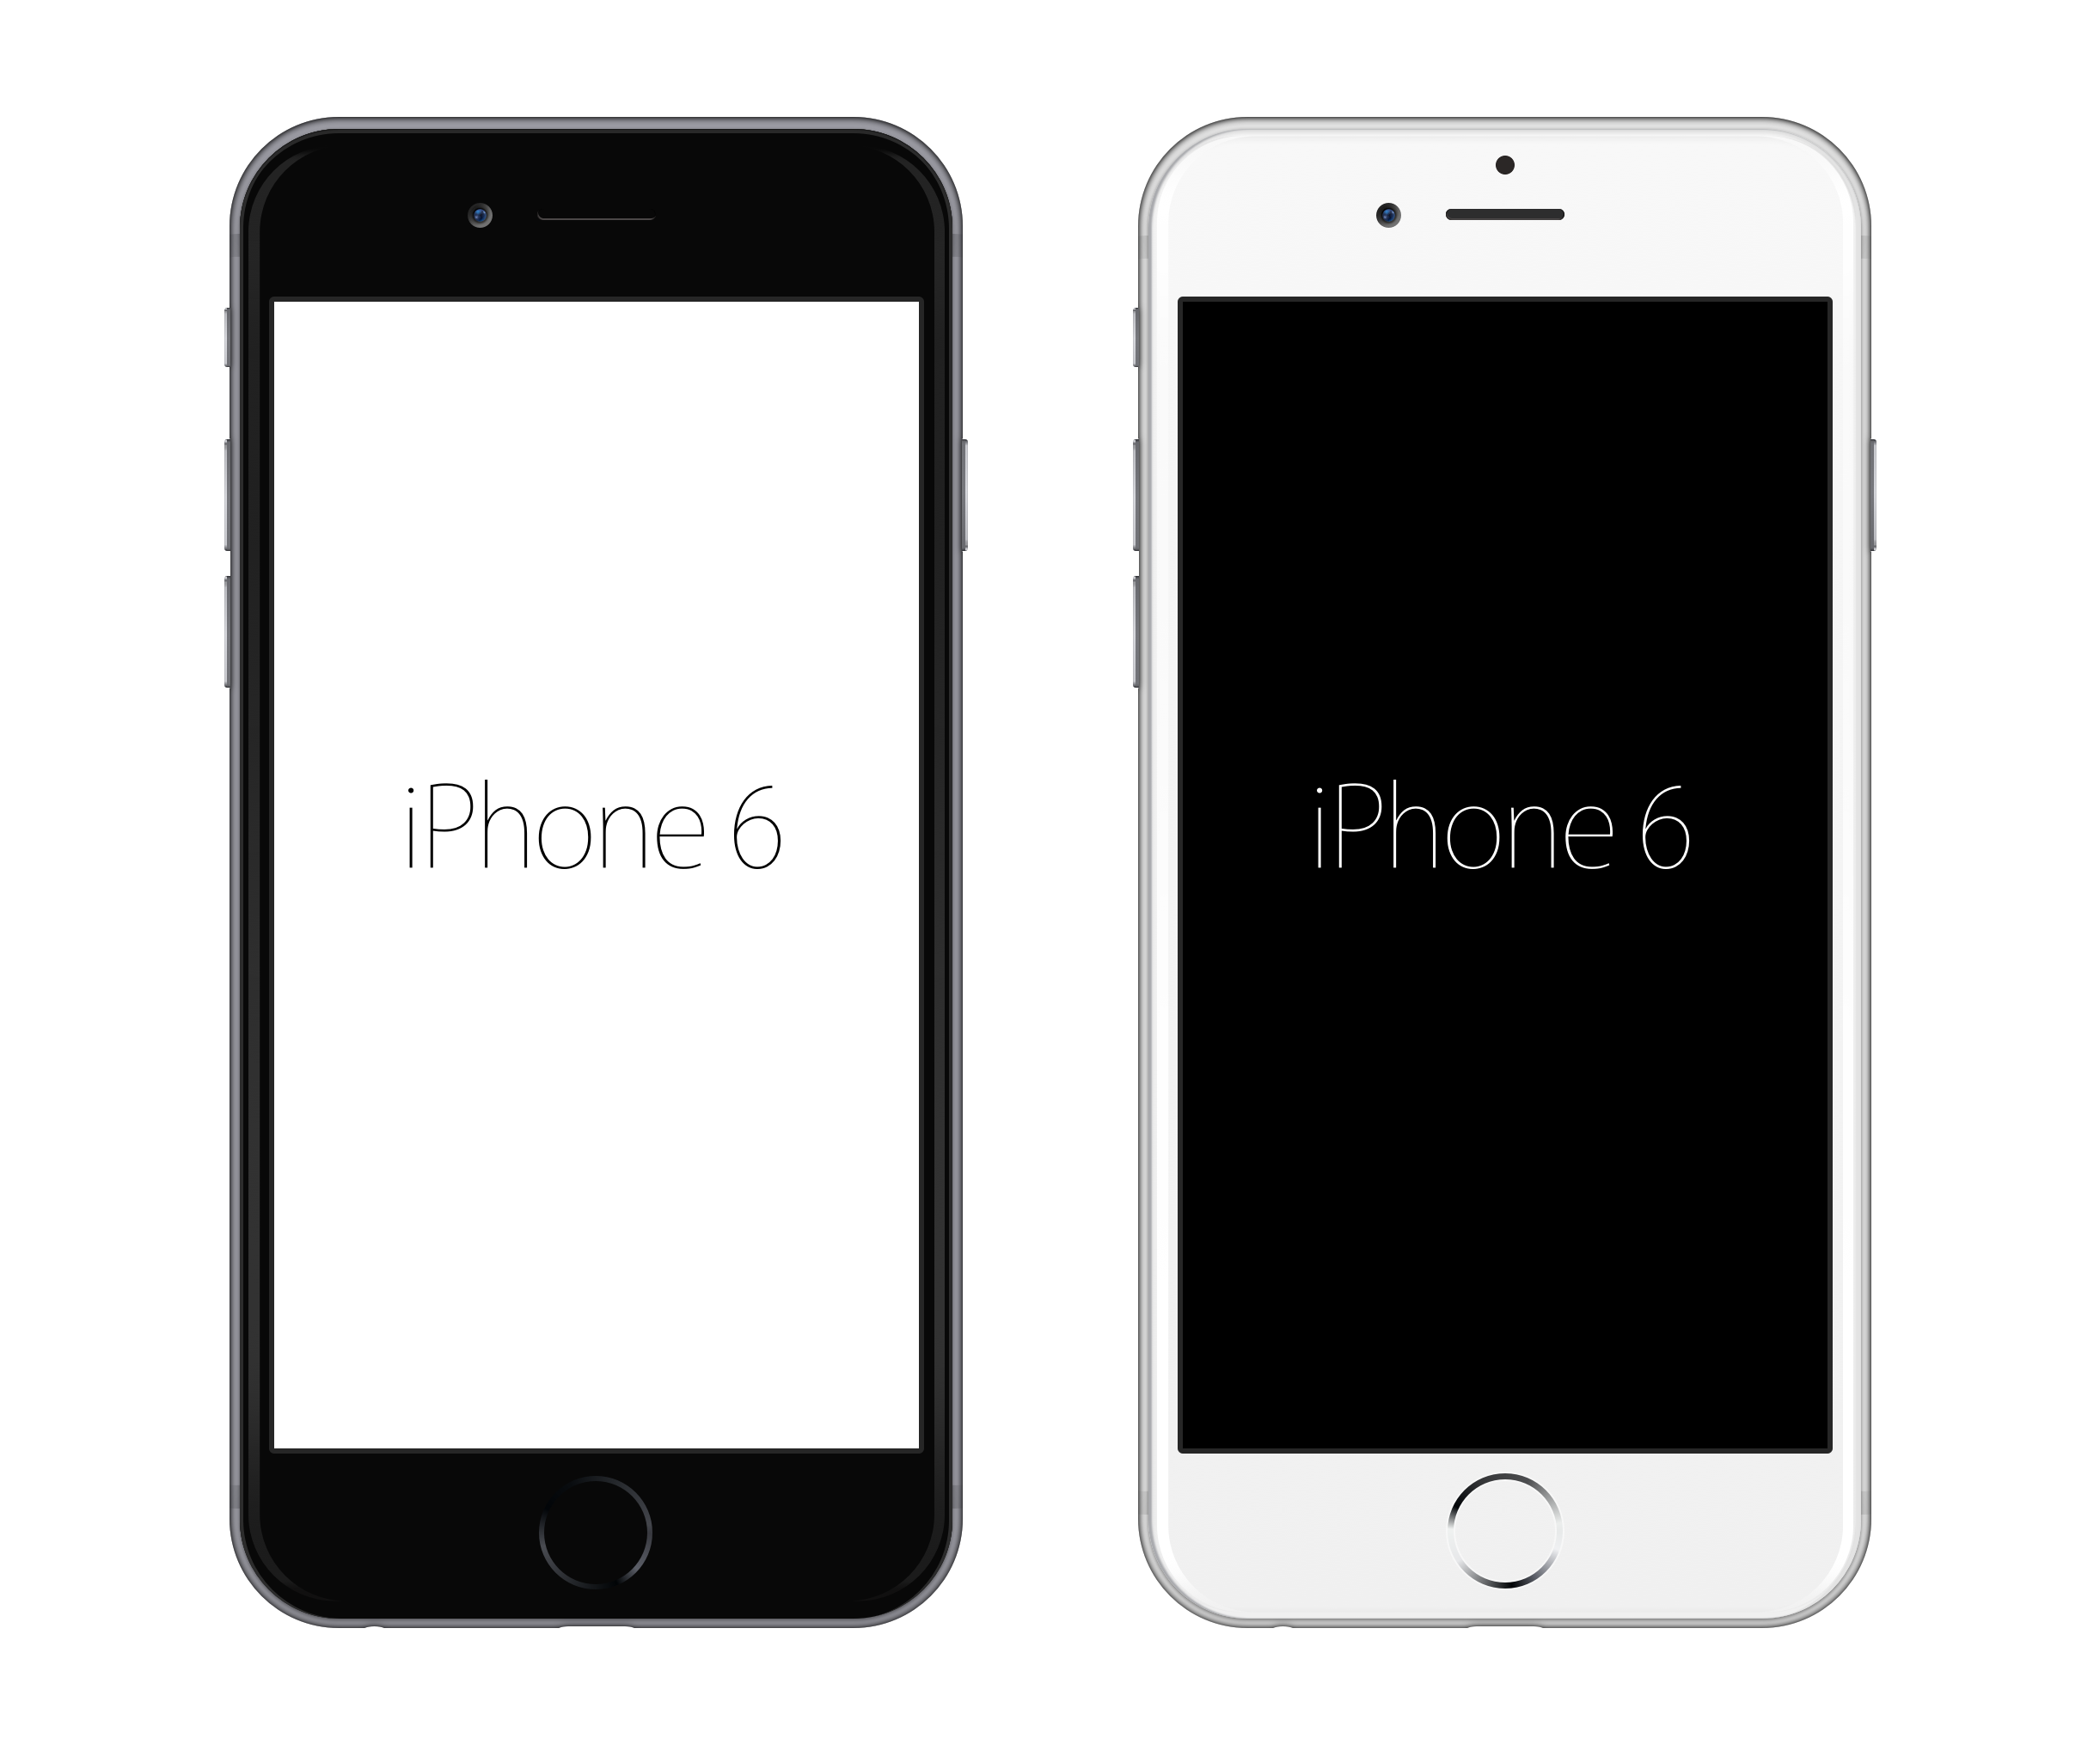 iPhone 6 Sketch Template Iphone, Iphone 6, Iphone 6 screen